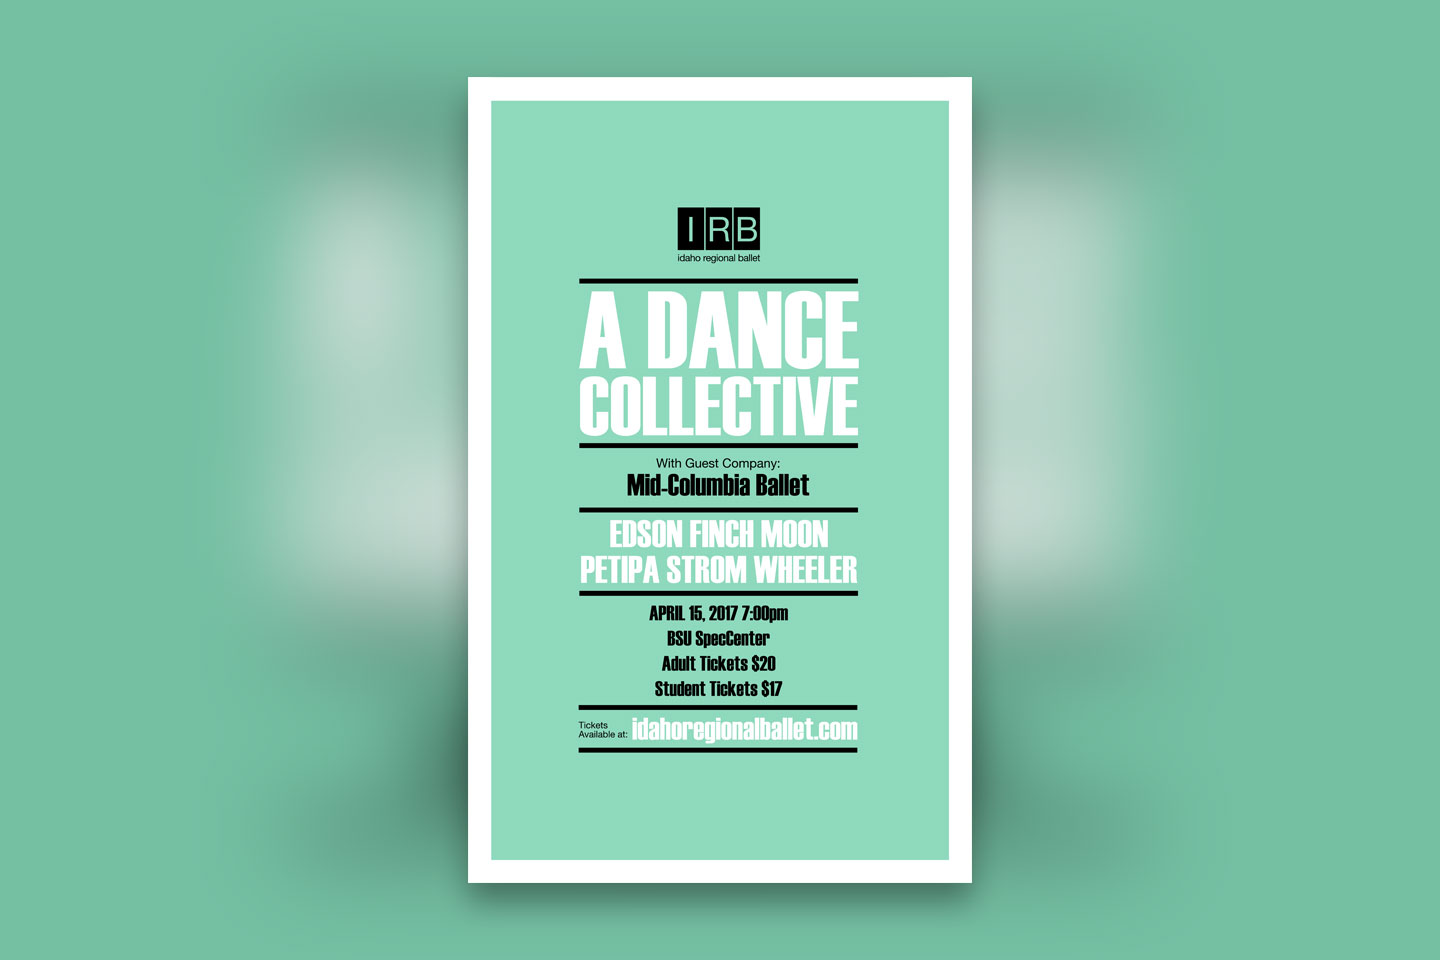 Poster design for Idaho Regional Ballet's A Dance Collective event